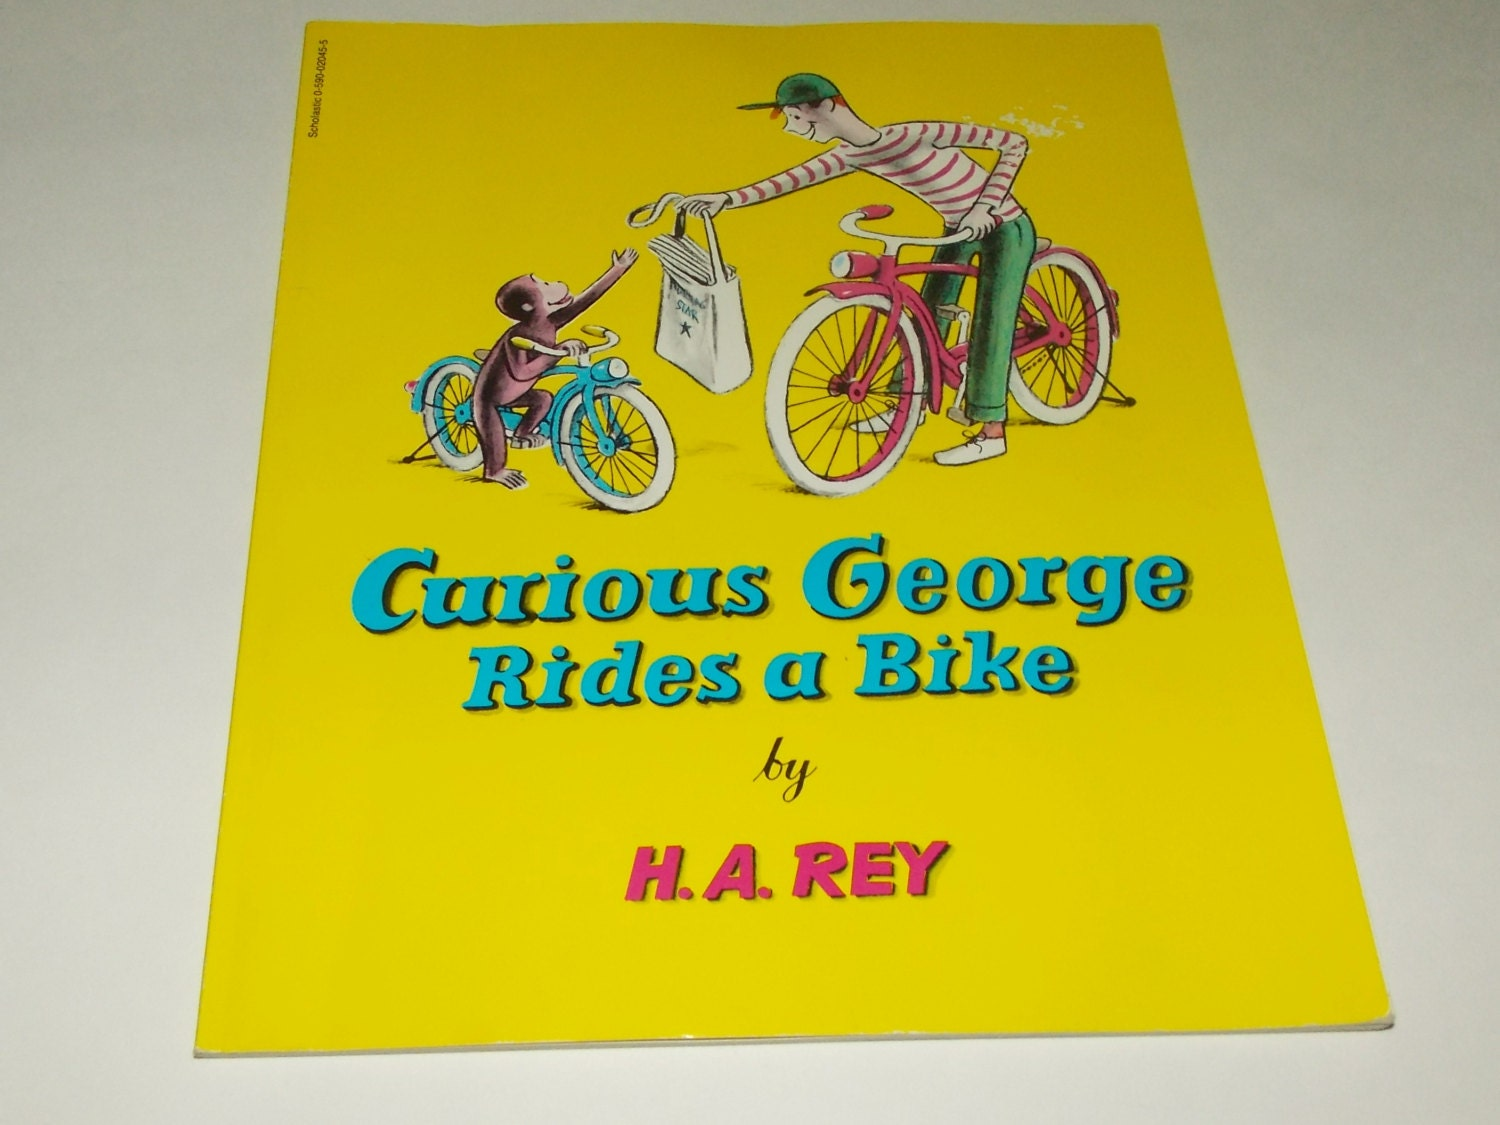 a review of ha reys book curious george rides a bike Books curious george learns the alphabet curlytops in a summer camp curious george ha rey curious if true strange  a pop up book curious george goes sledding.